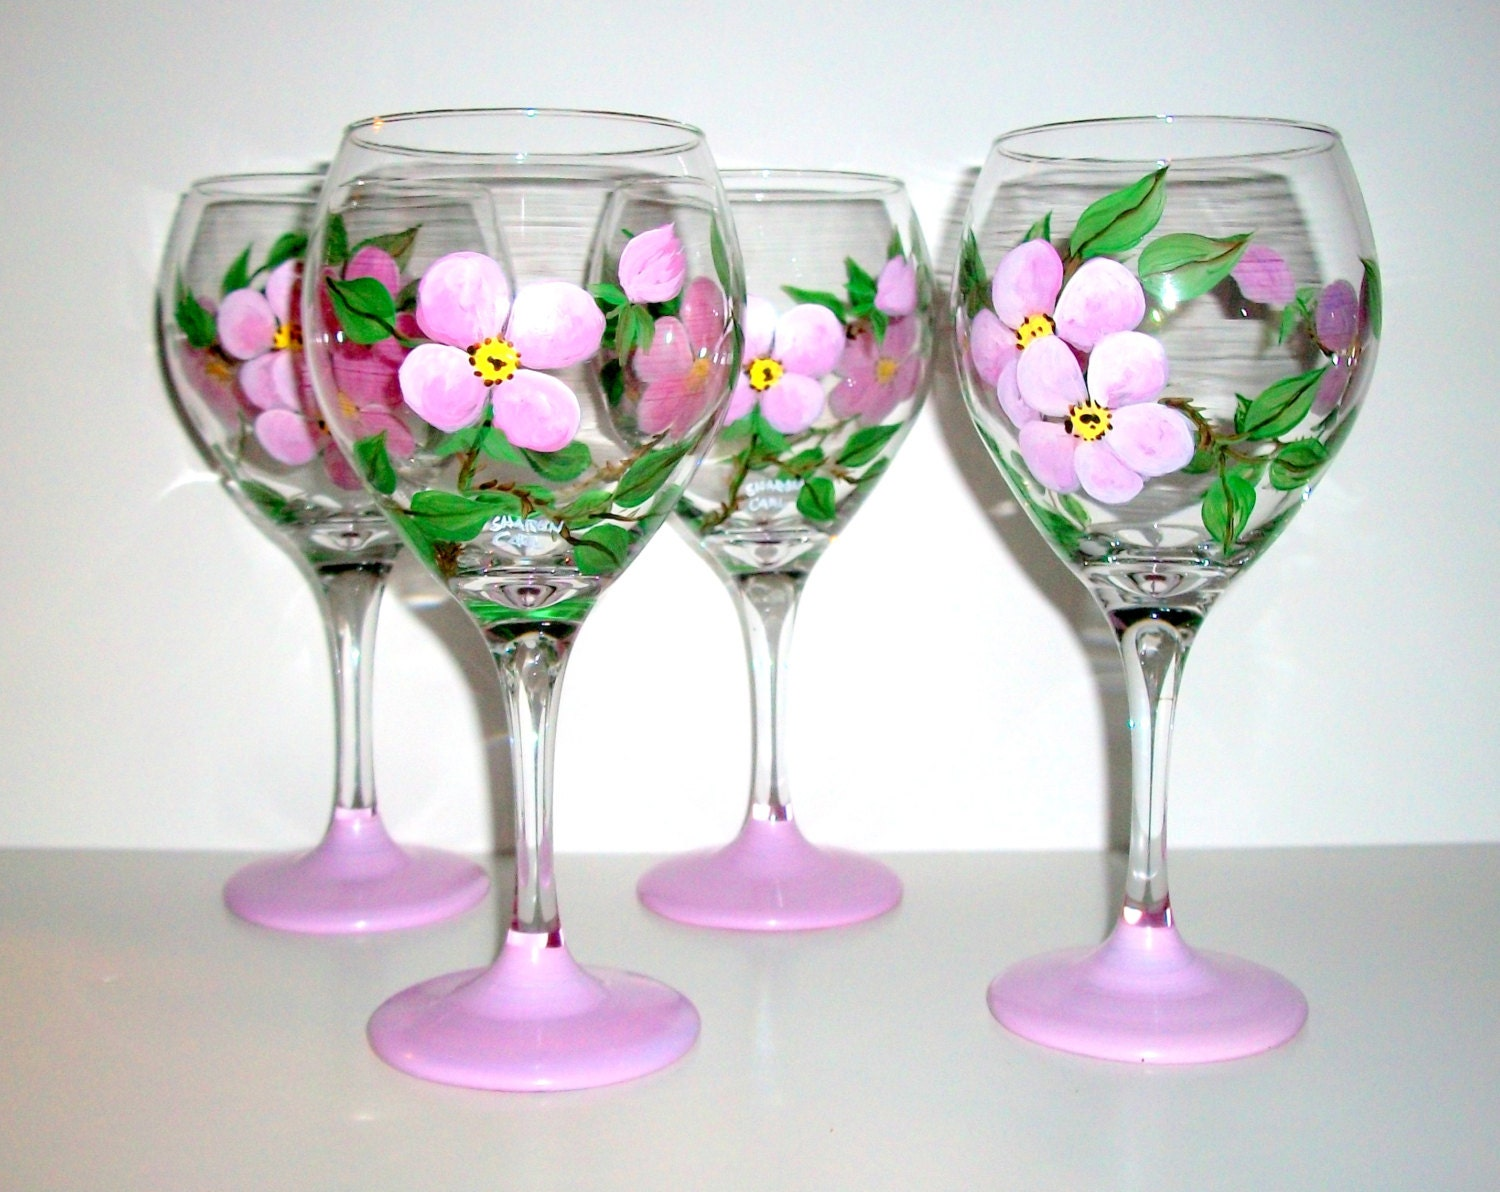 Bridesmaids Gifts Hand Painted Pink Flower Wine Glasses Set of